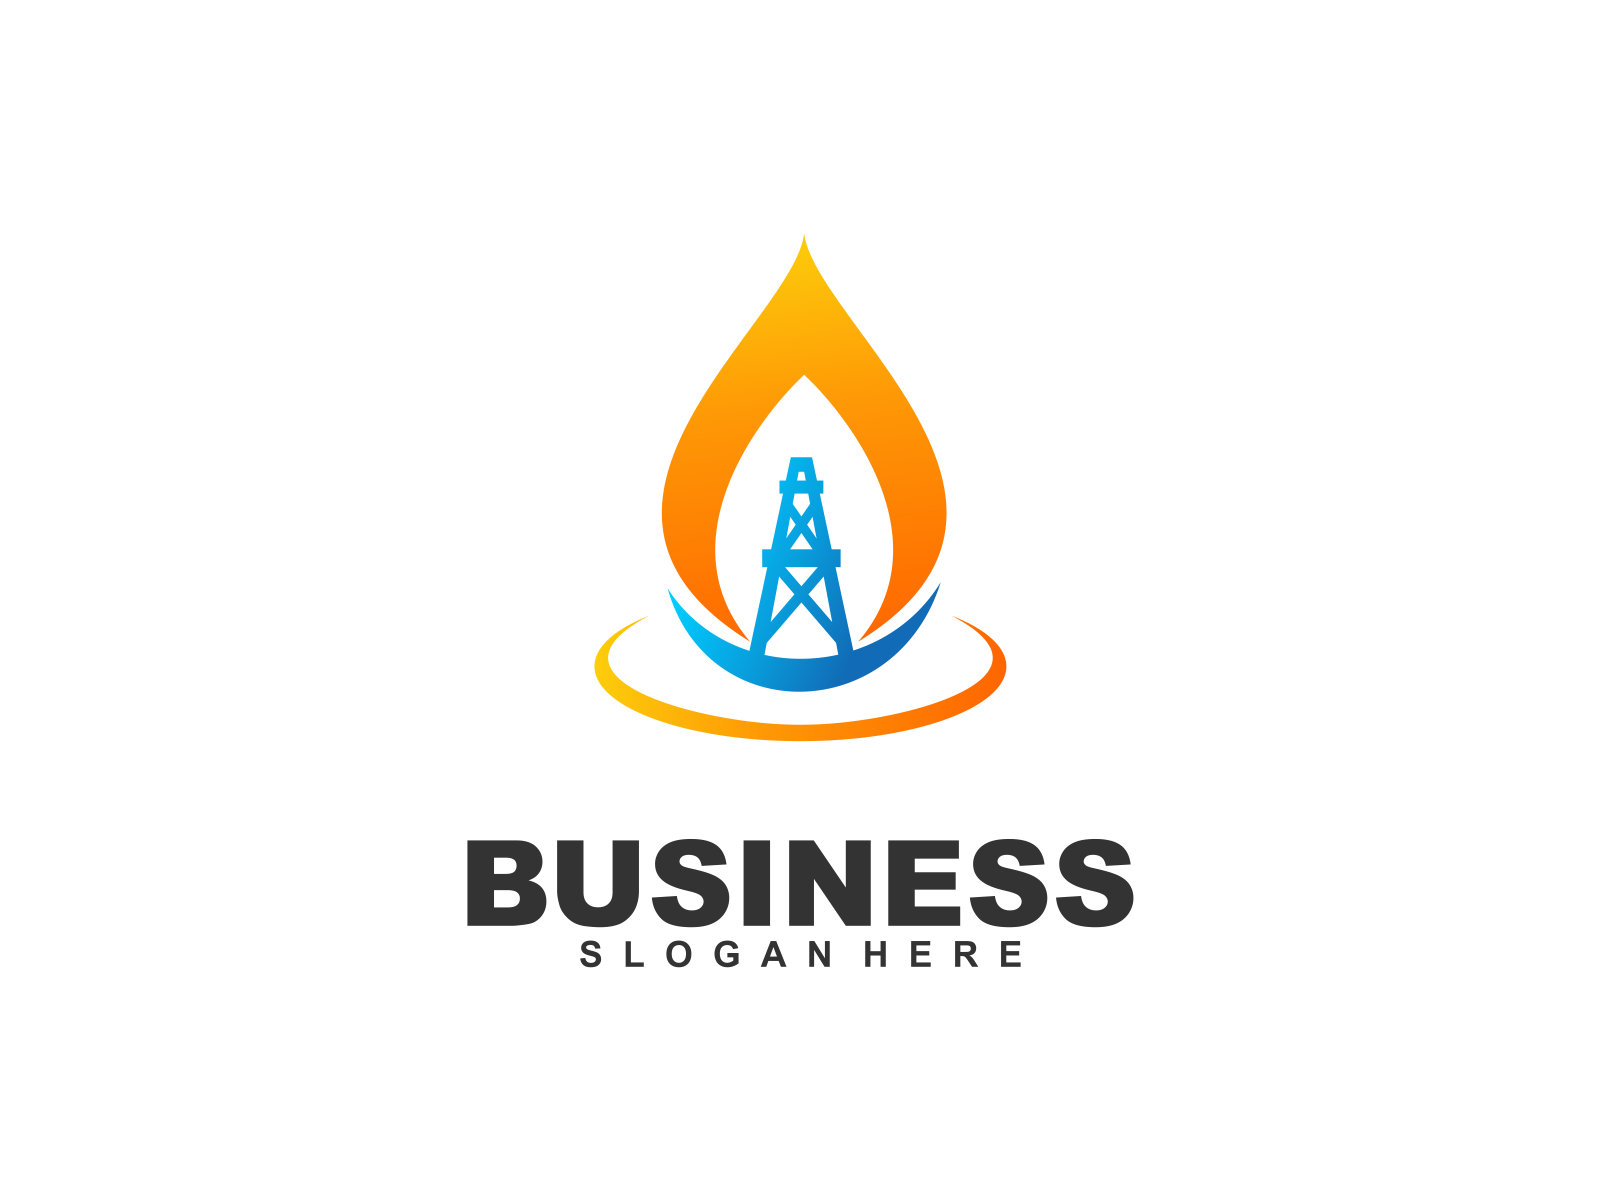 Oil & Gas Industri by Meremelek  a perfect logo for Technology